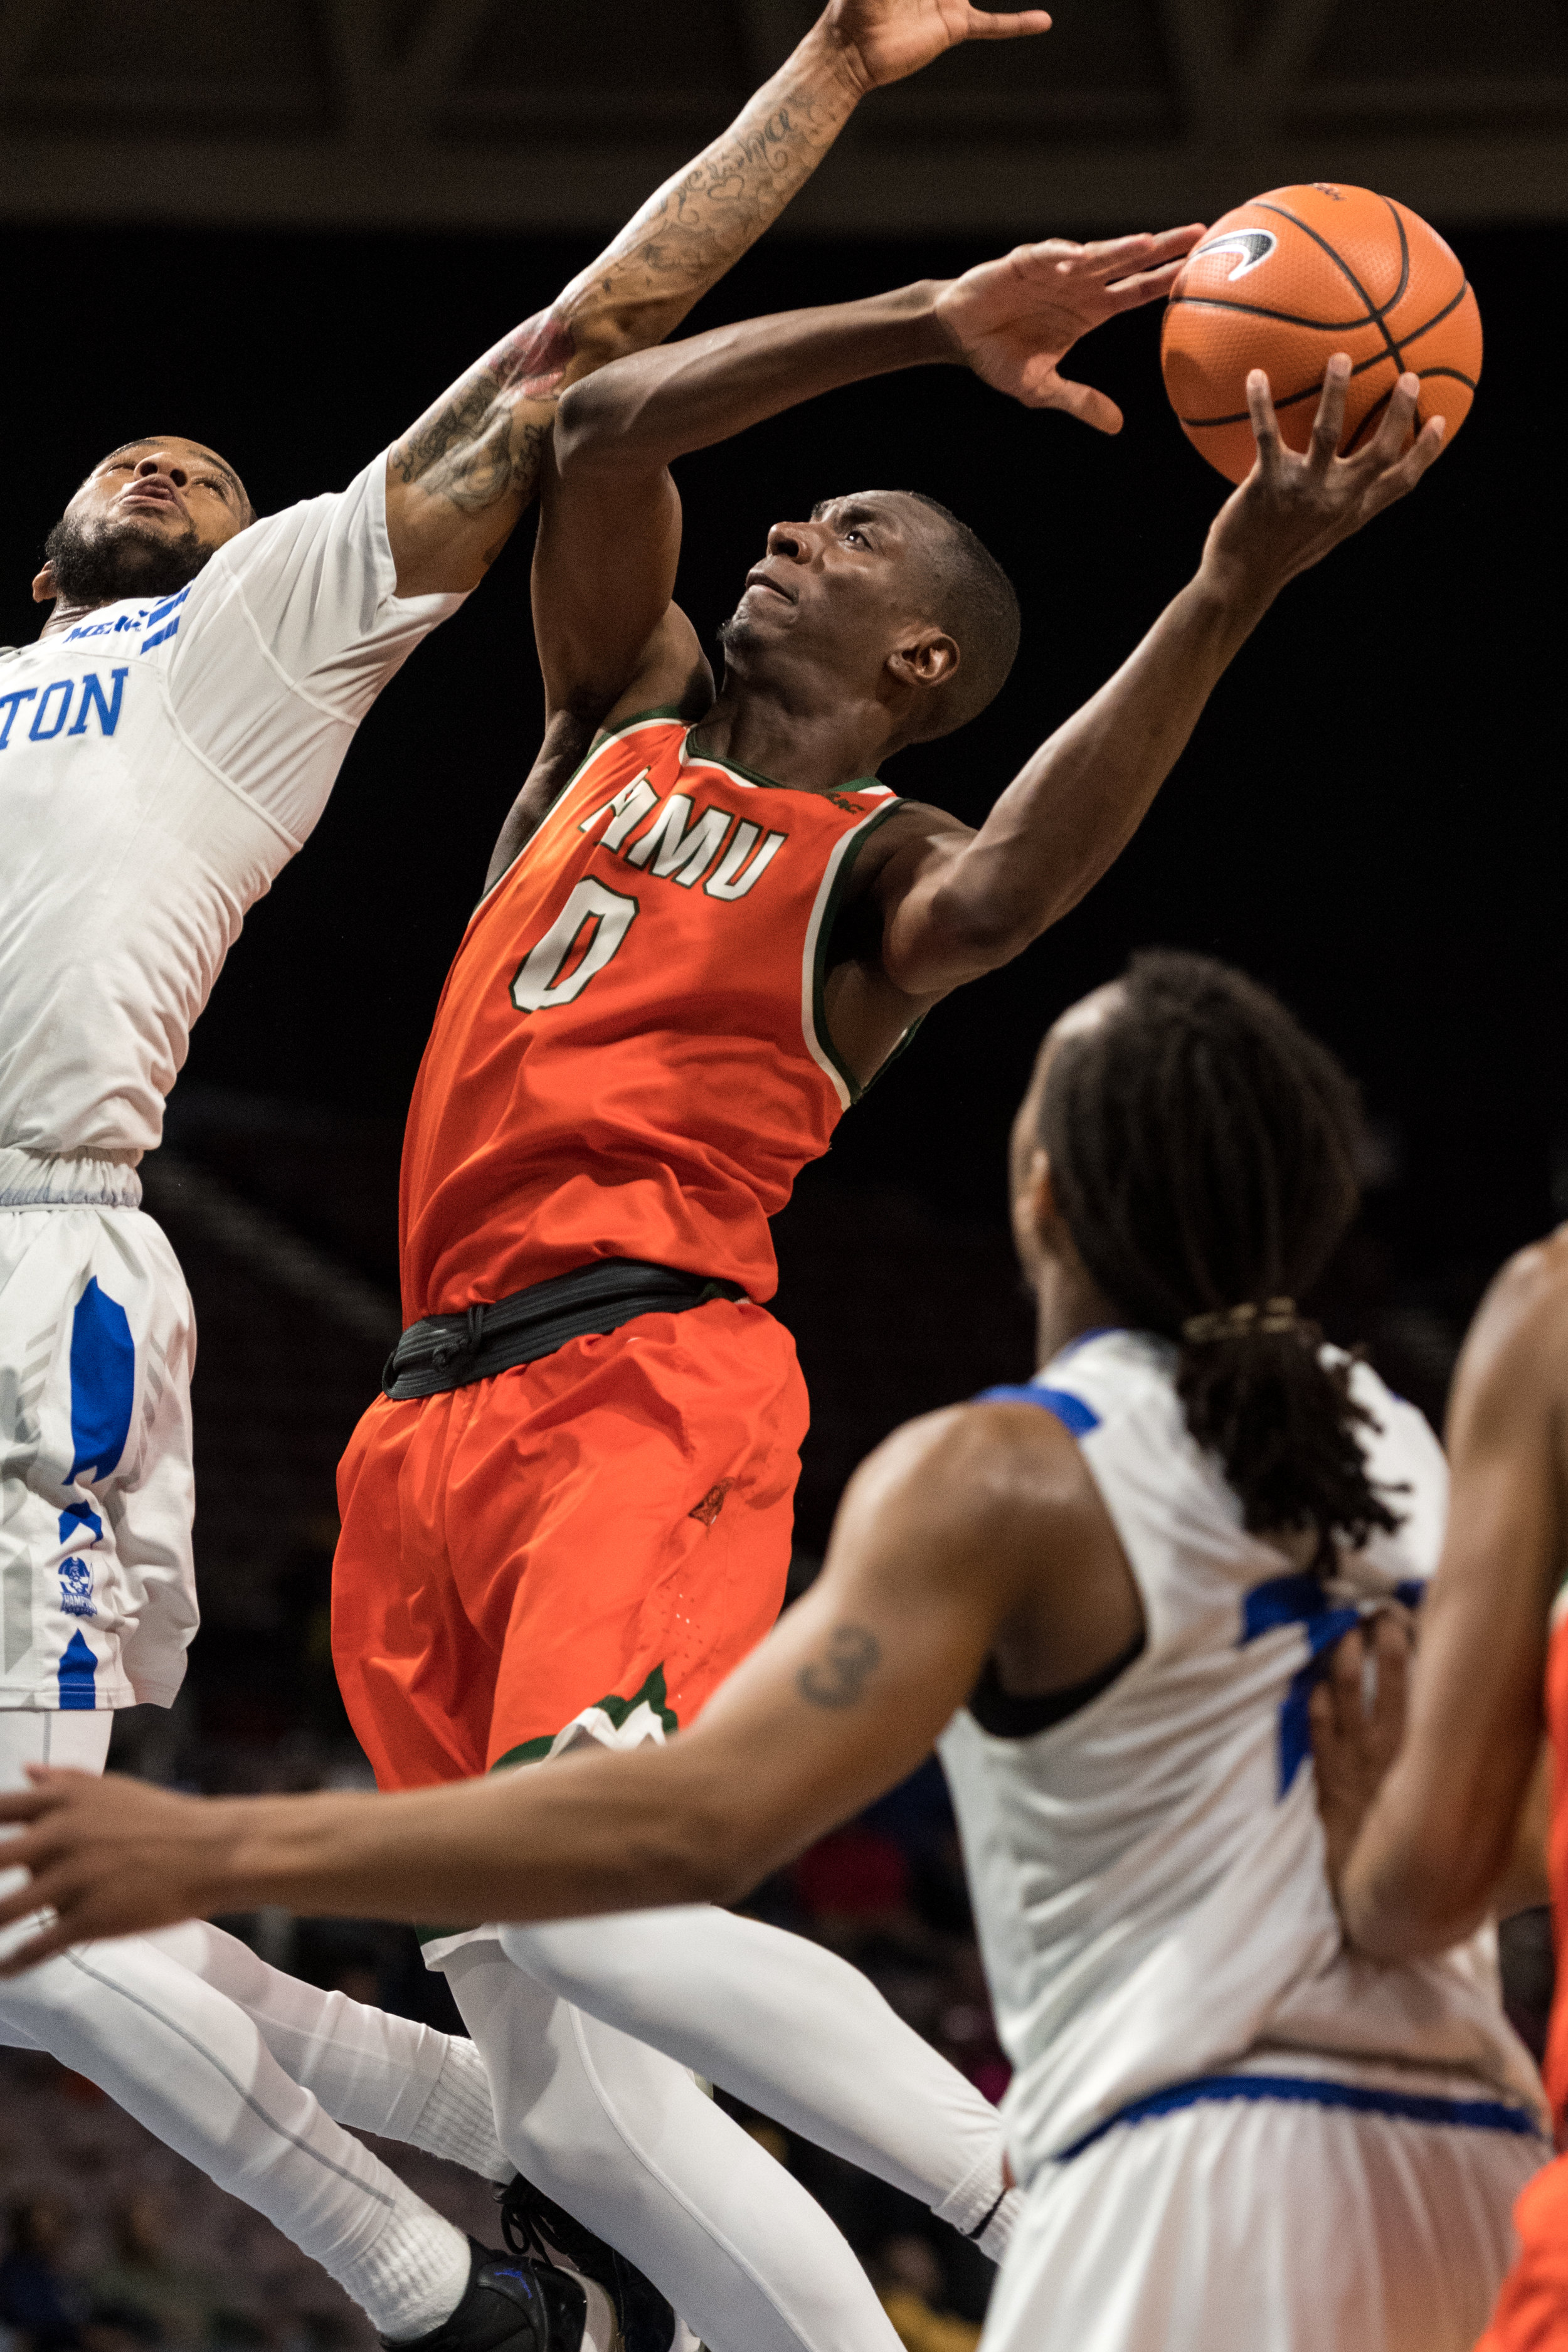 Florida A&M Rattlers forward Desmond Williams (0) takes a shot under pressure from Hampton Pirates guard Malique Trent-Street (1) during the Wednesday, March 7, 2018 game held at Norfolk Scope Arena. Hampton defeated Florida A&M 75 to 71.